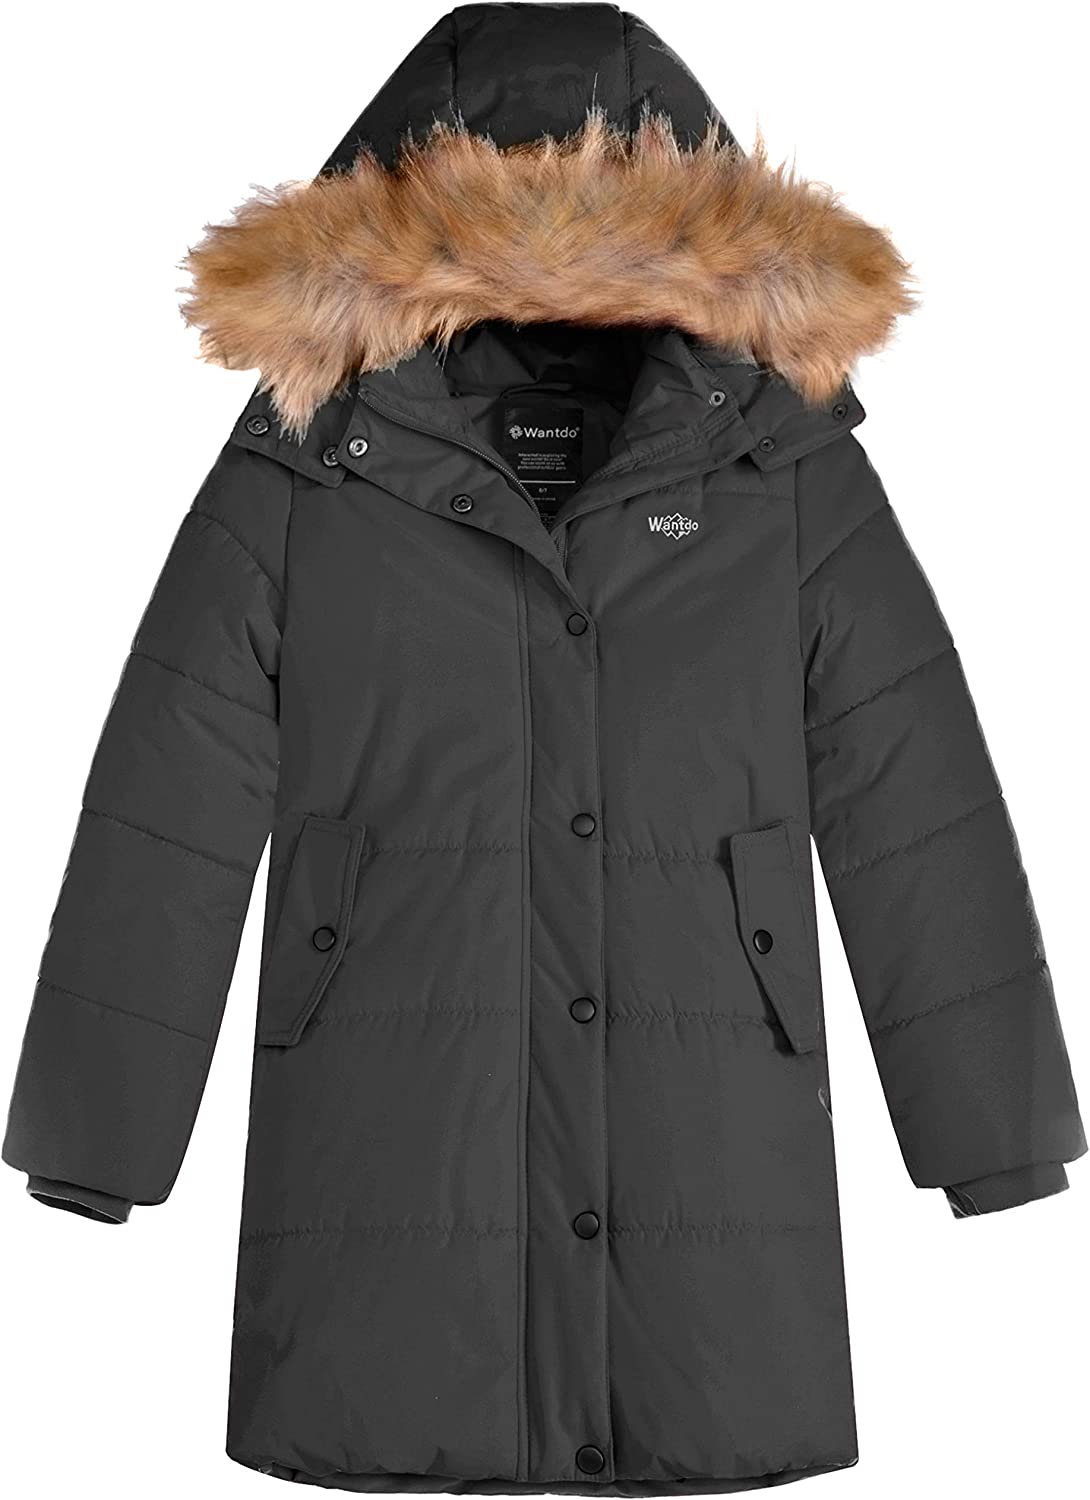 Wantdo Girl's Water-Resistant Winter Coat Thicken Fleece Lined Puffer Jacket Hooded Parka: Clothing